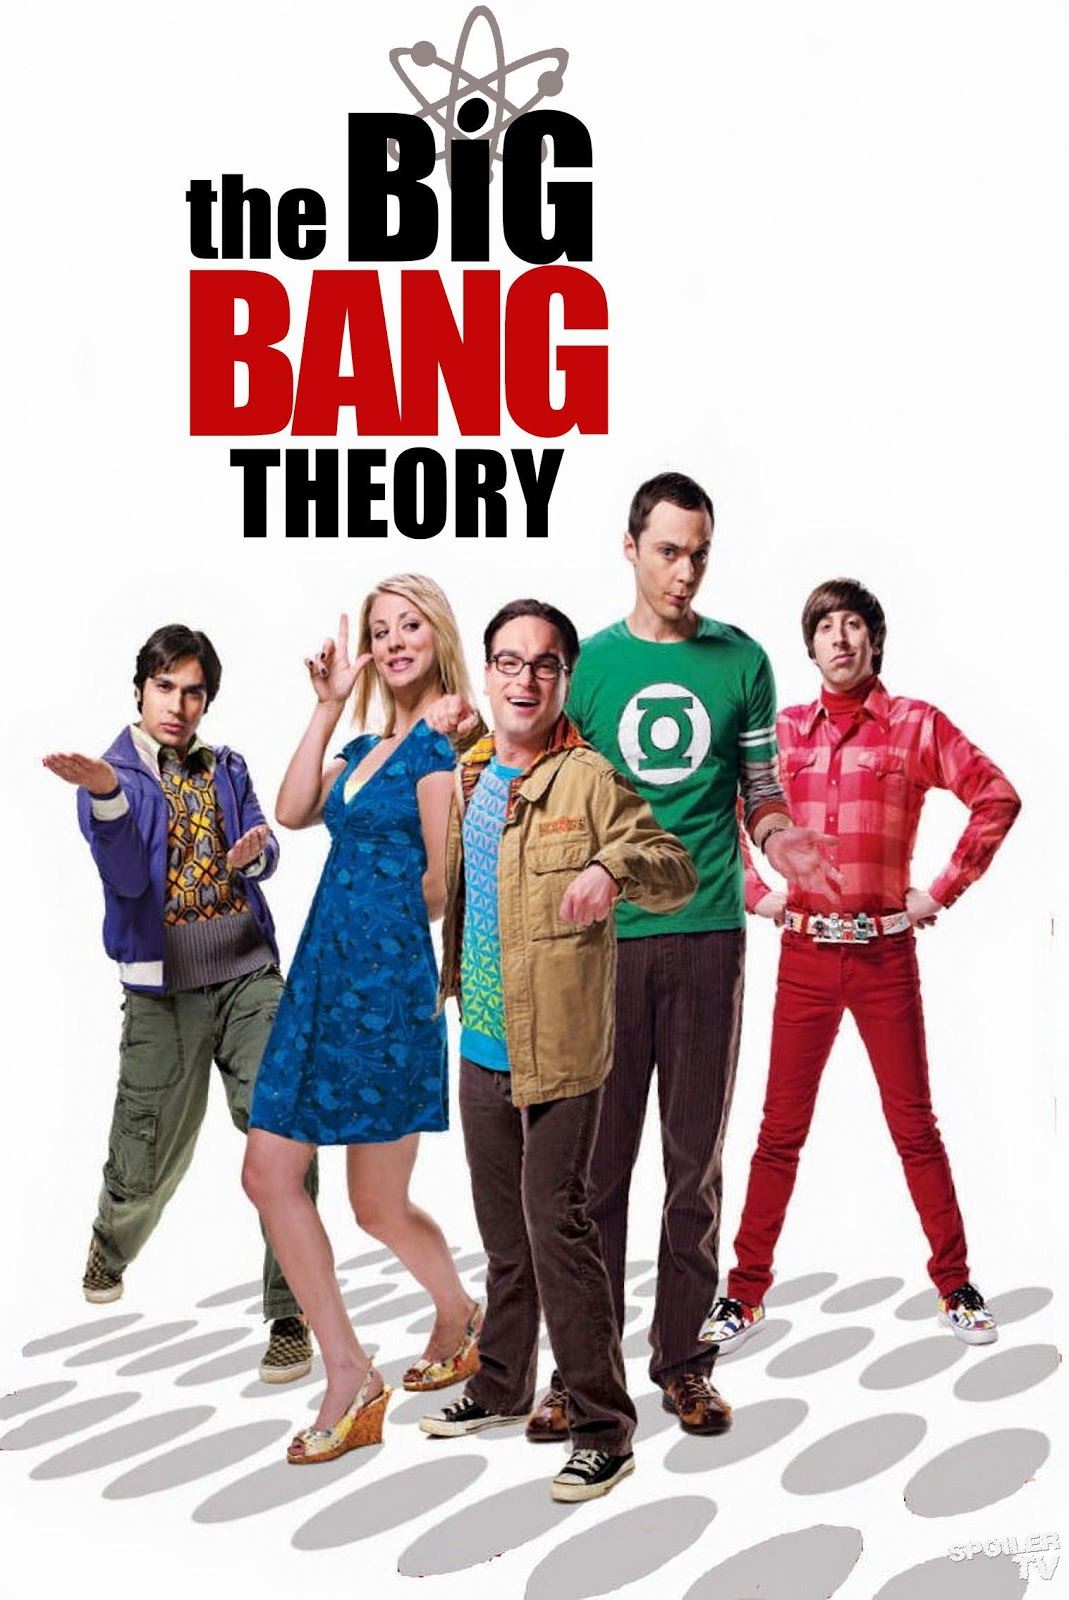 the big bang theory s09e02 free download hd movies free download hd. Black Bedroom Furniture Sets. Home Design Ideas